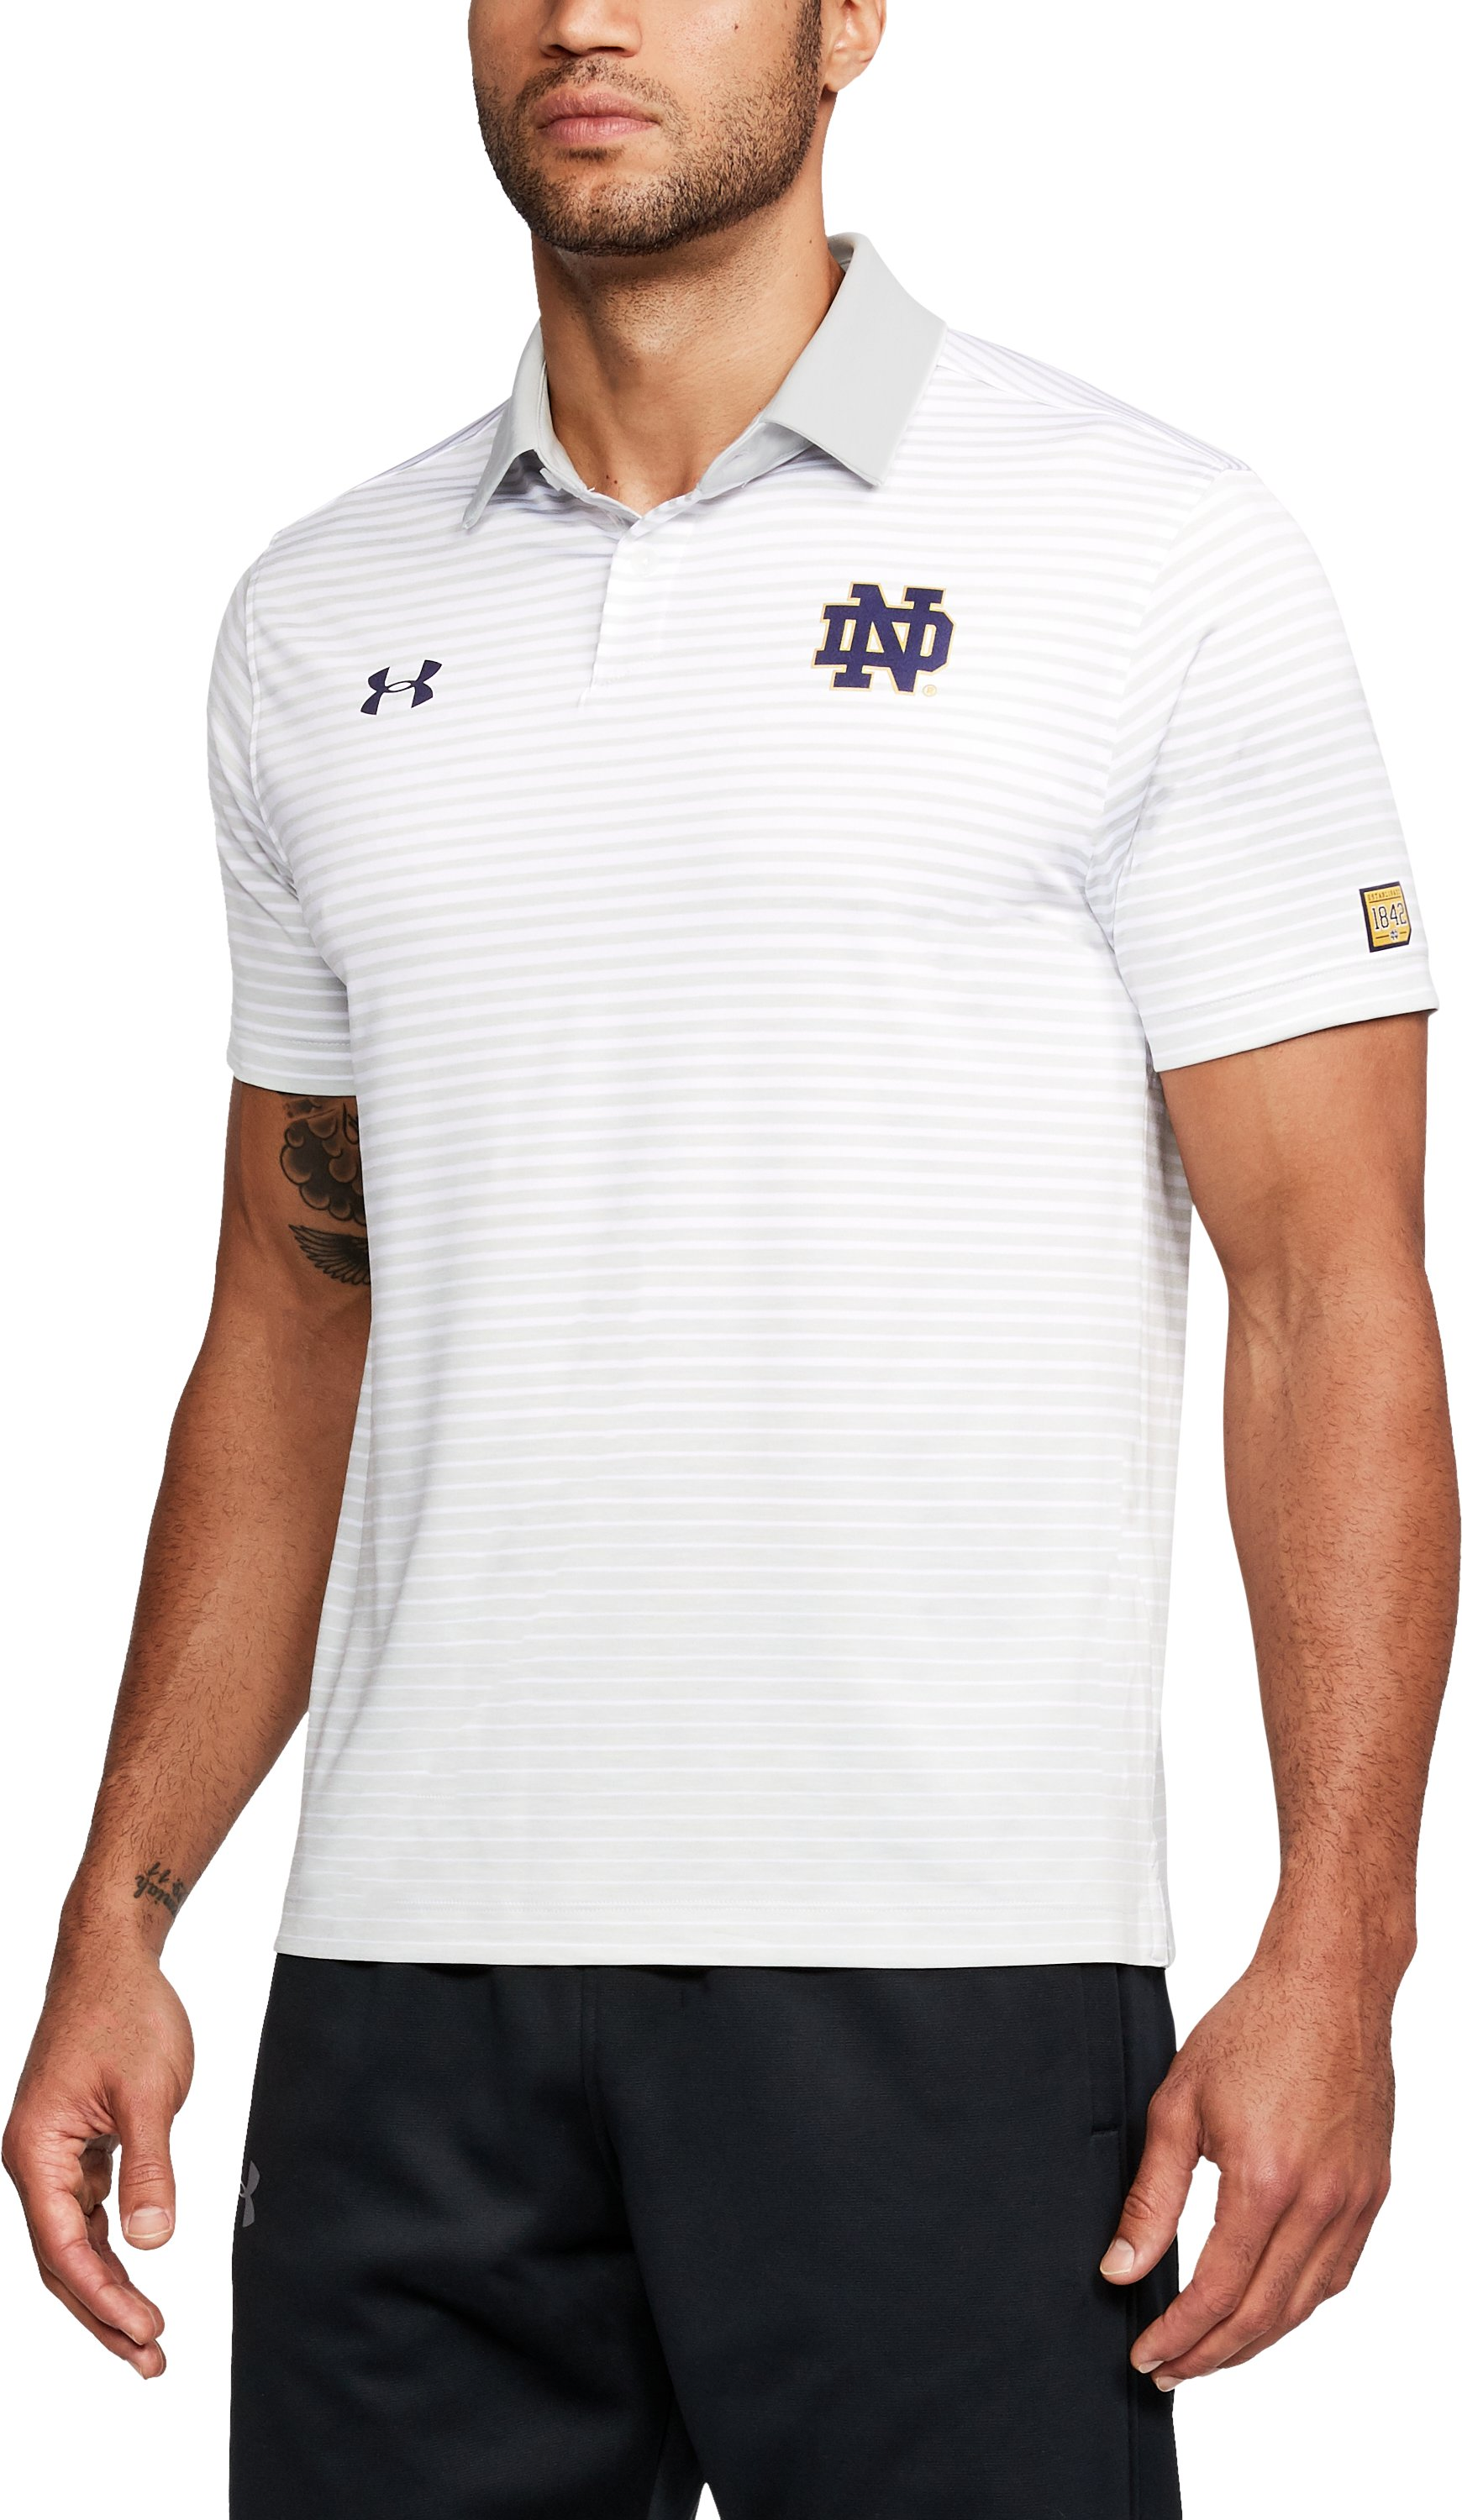 Men's Notre Dame Trajectory Polo, White, undefined